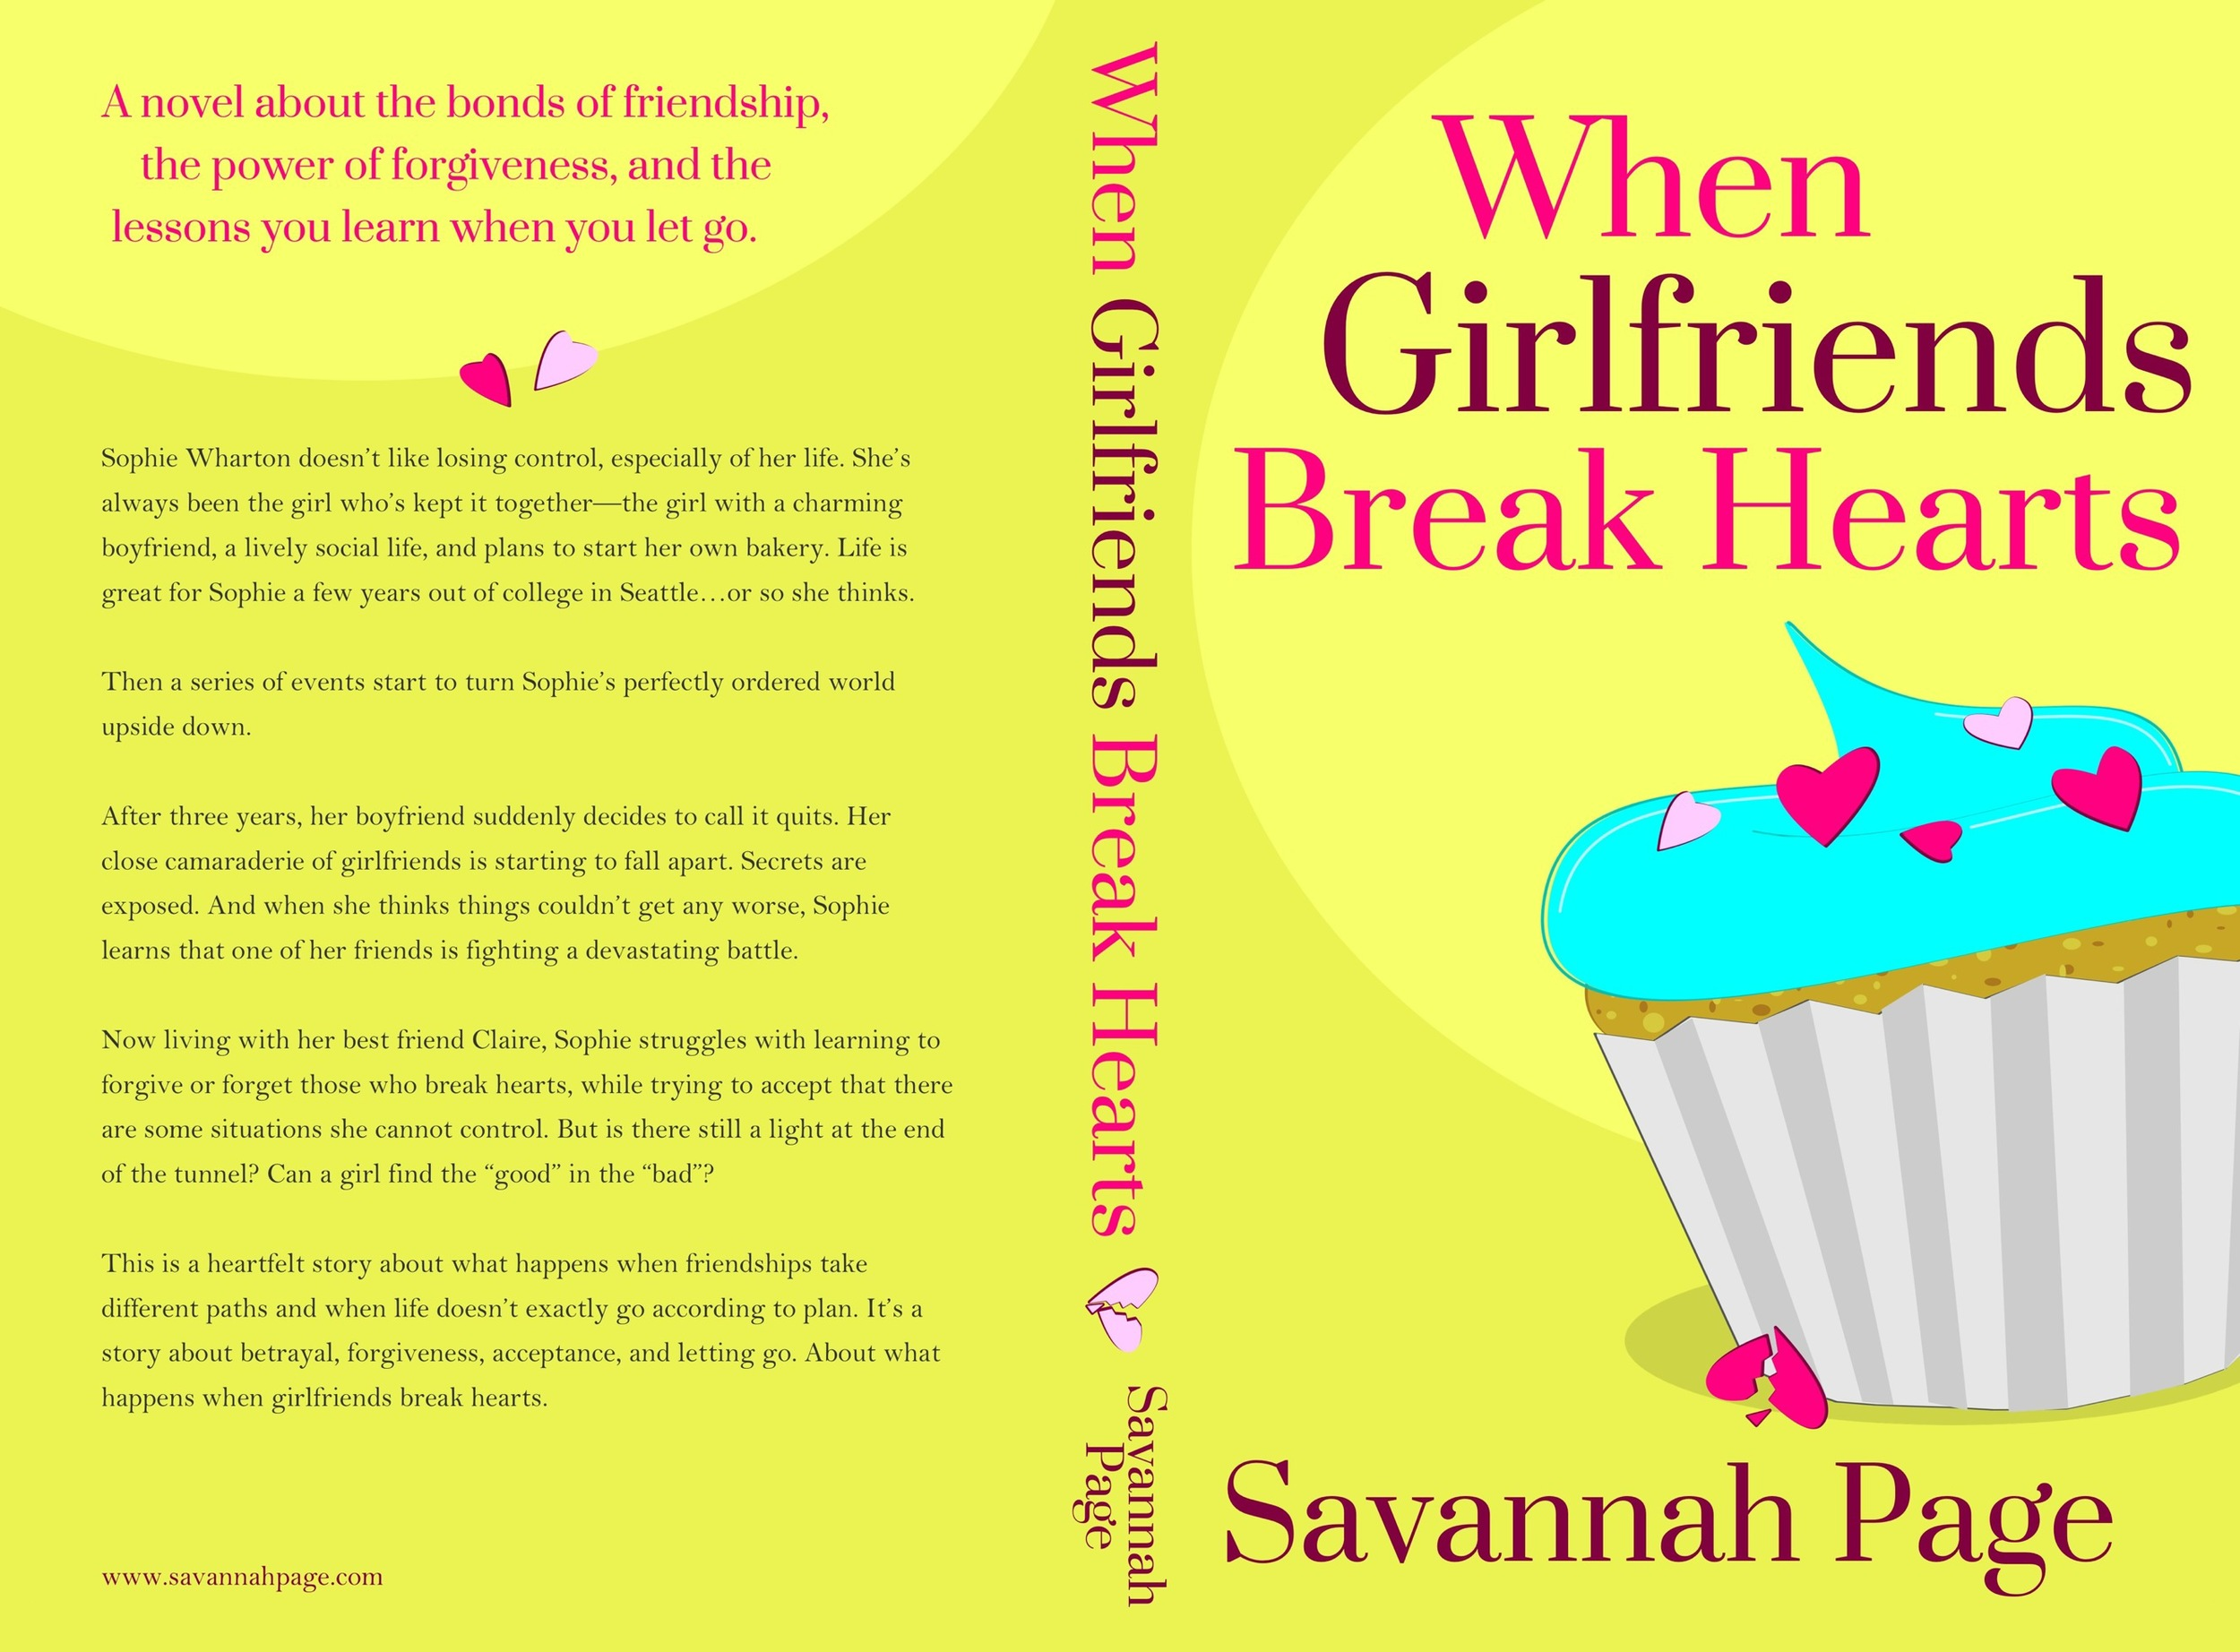 When Girlfriends Break Hearts By Savannah Page - Full Paperback Book Cover